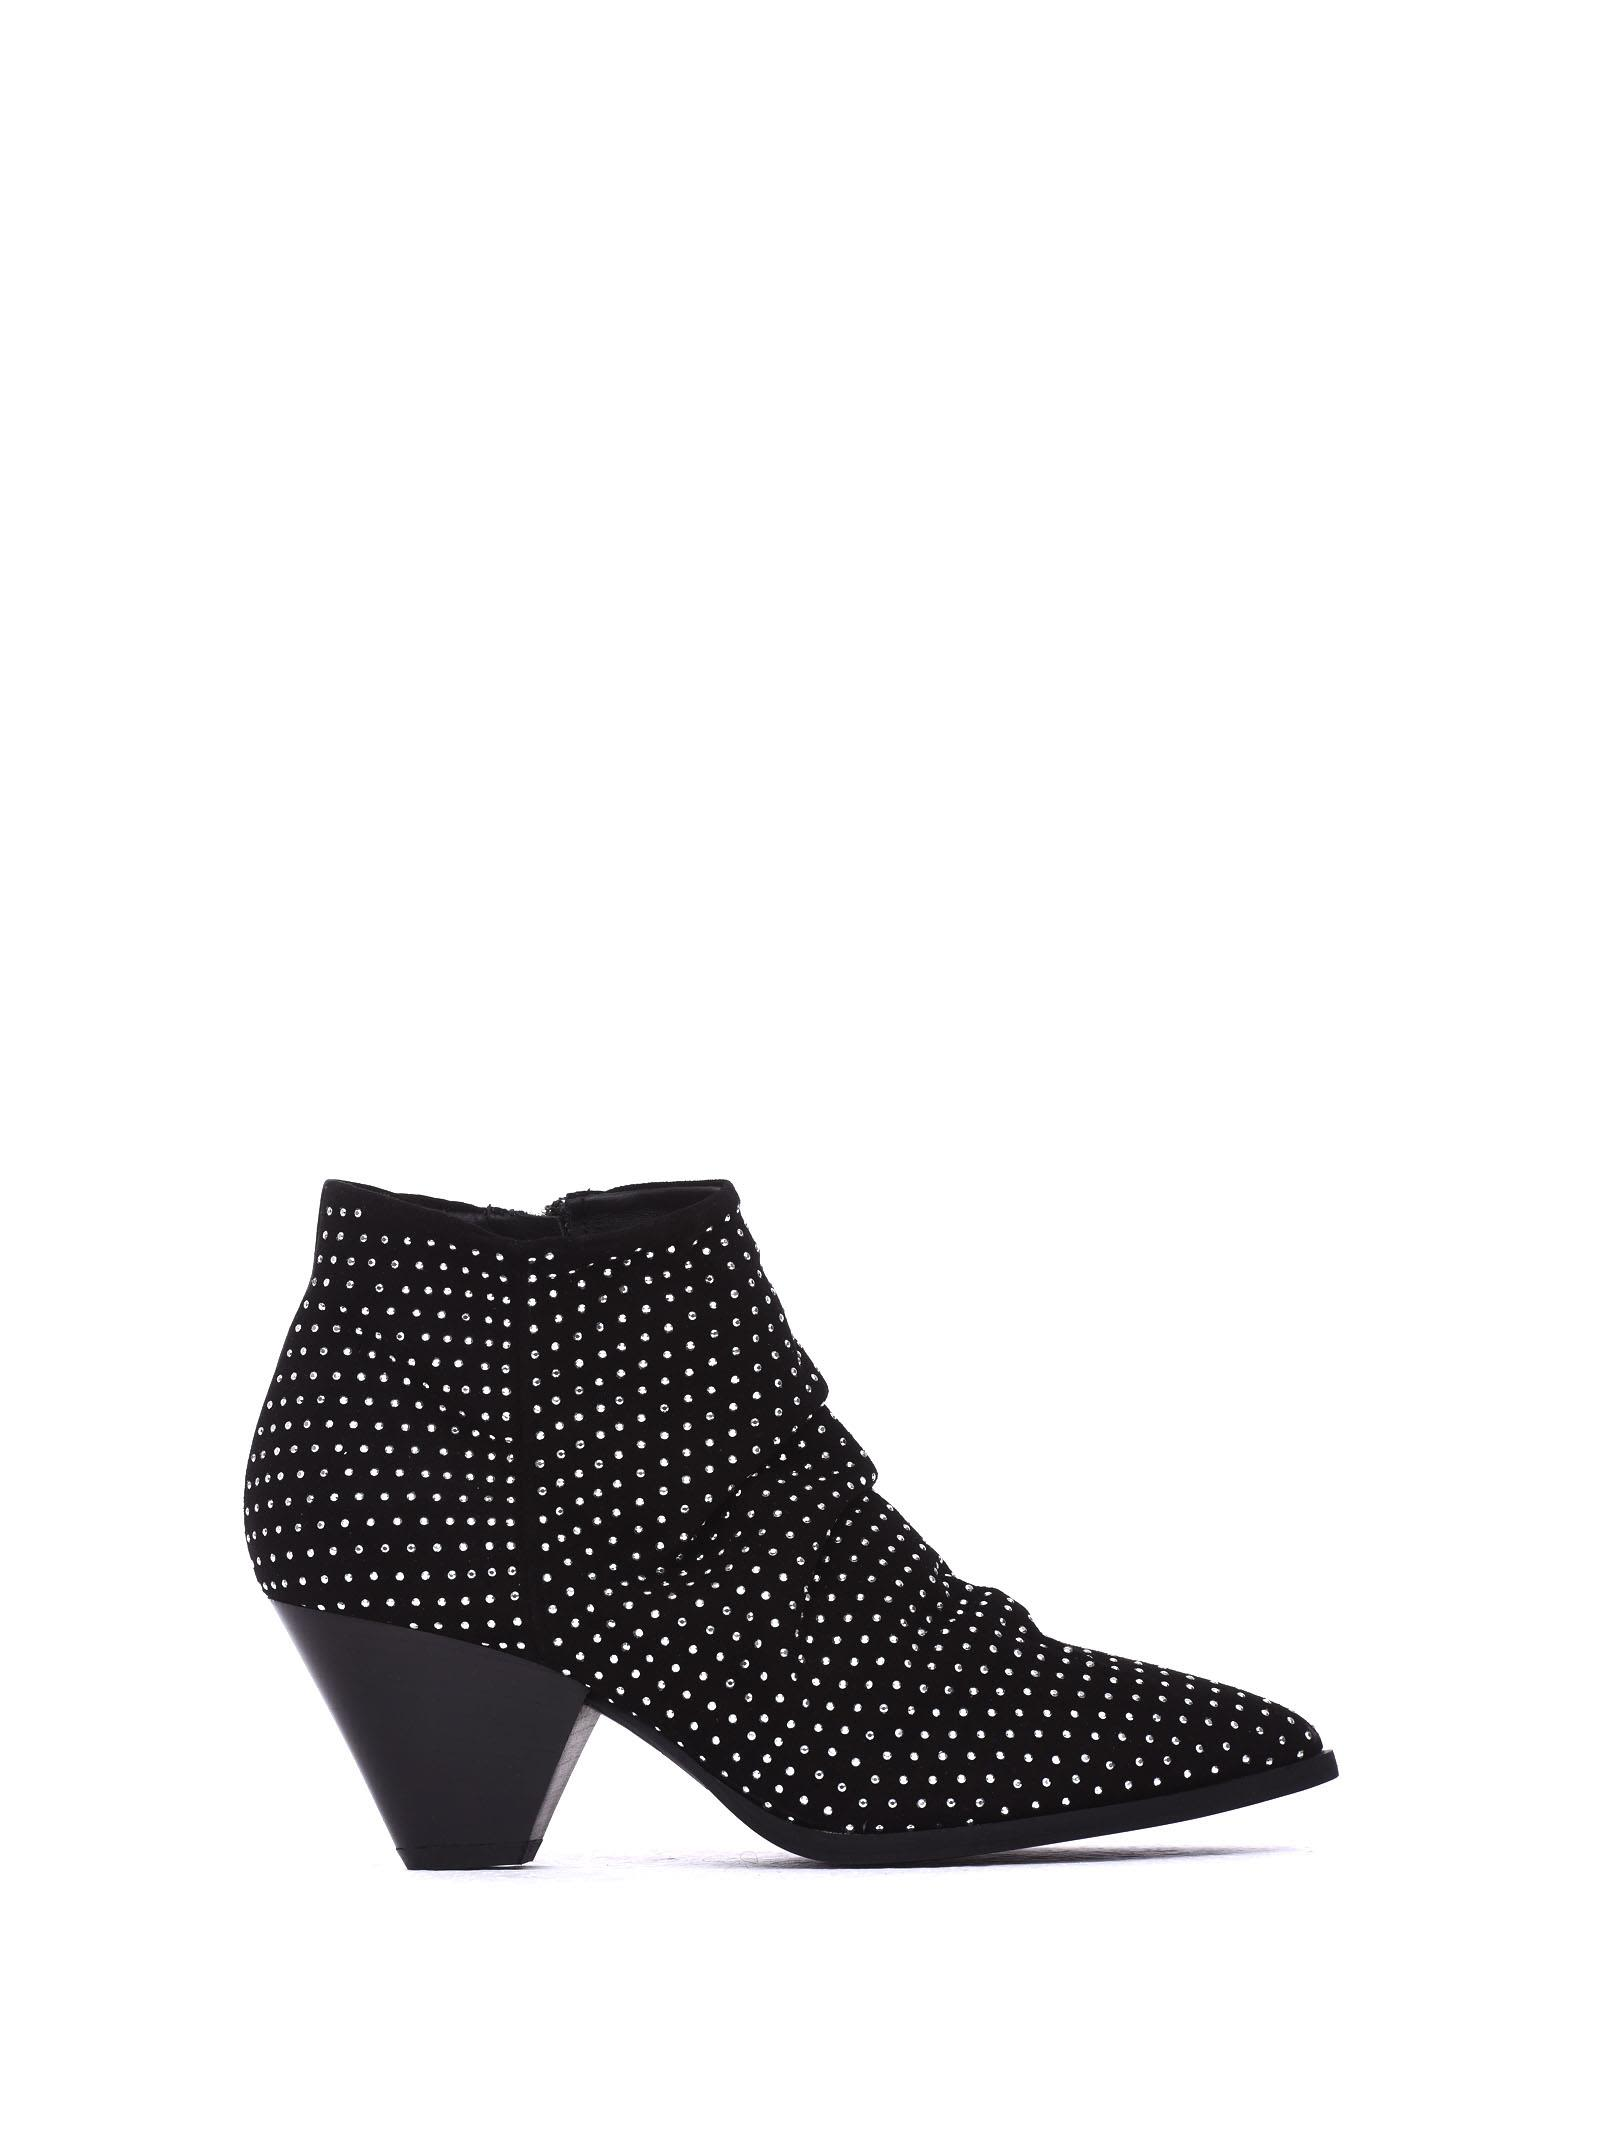 JANET&JANET Mia Black Ankle Boots in Nero